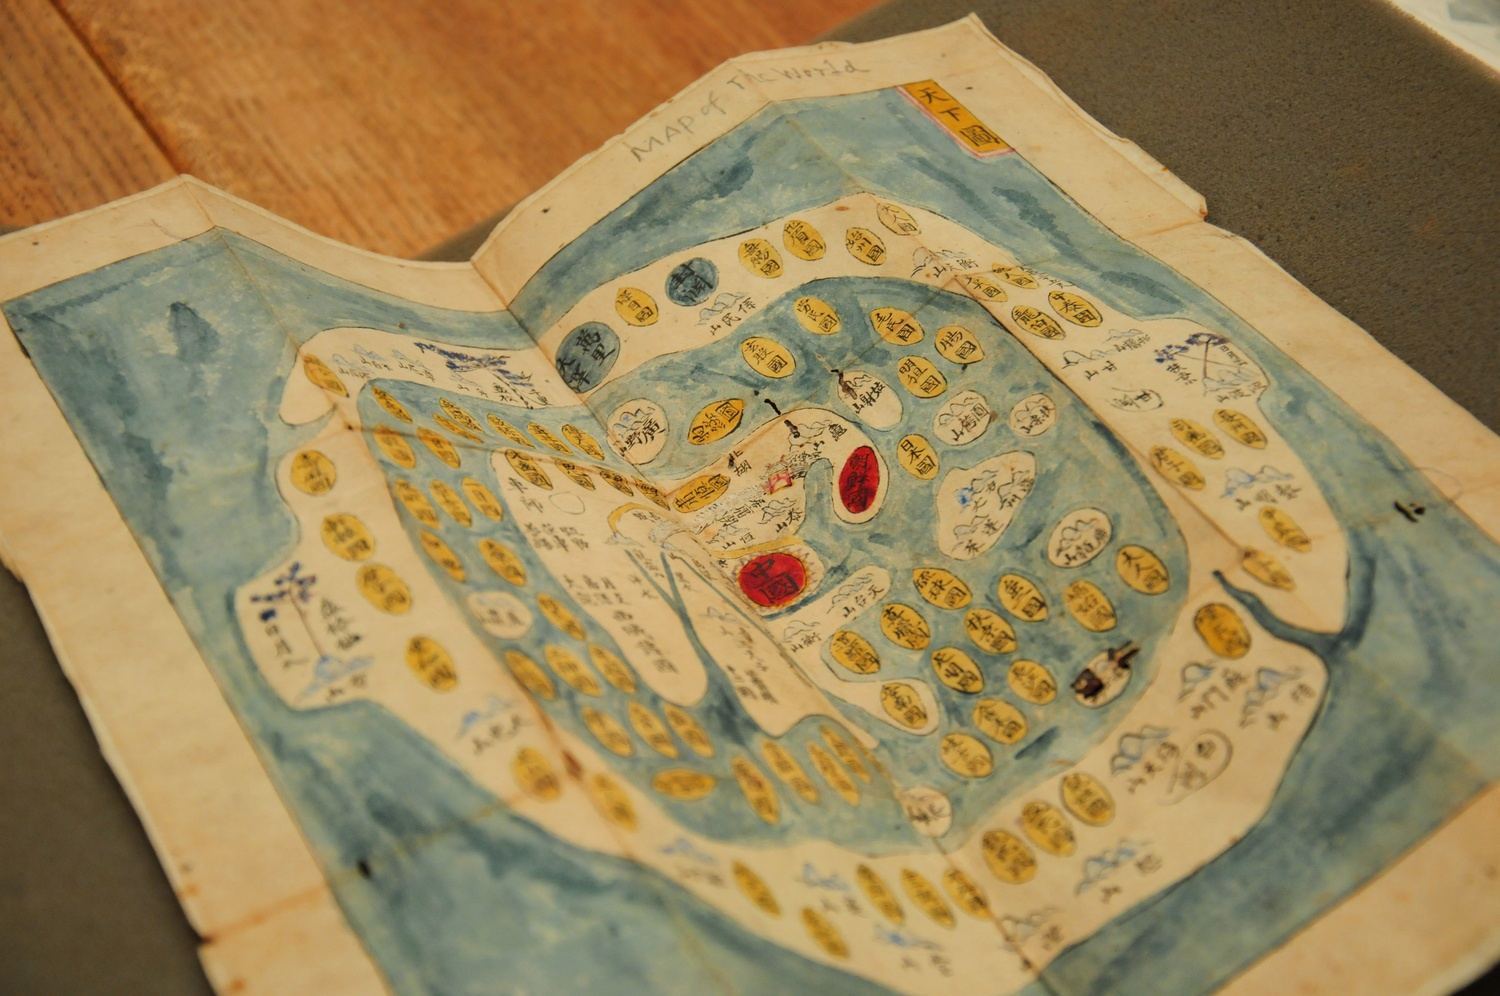 A 16th Century Japanese Map of the World housed in the Harvard Map Collection in the Pusey Library.